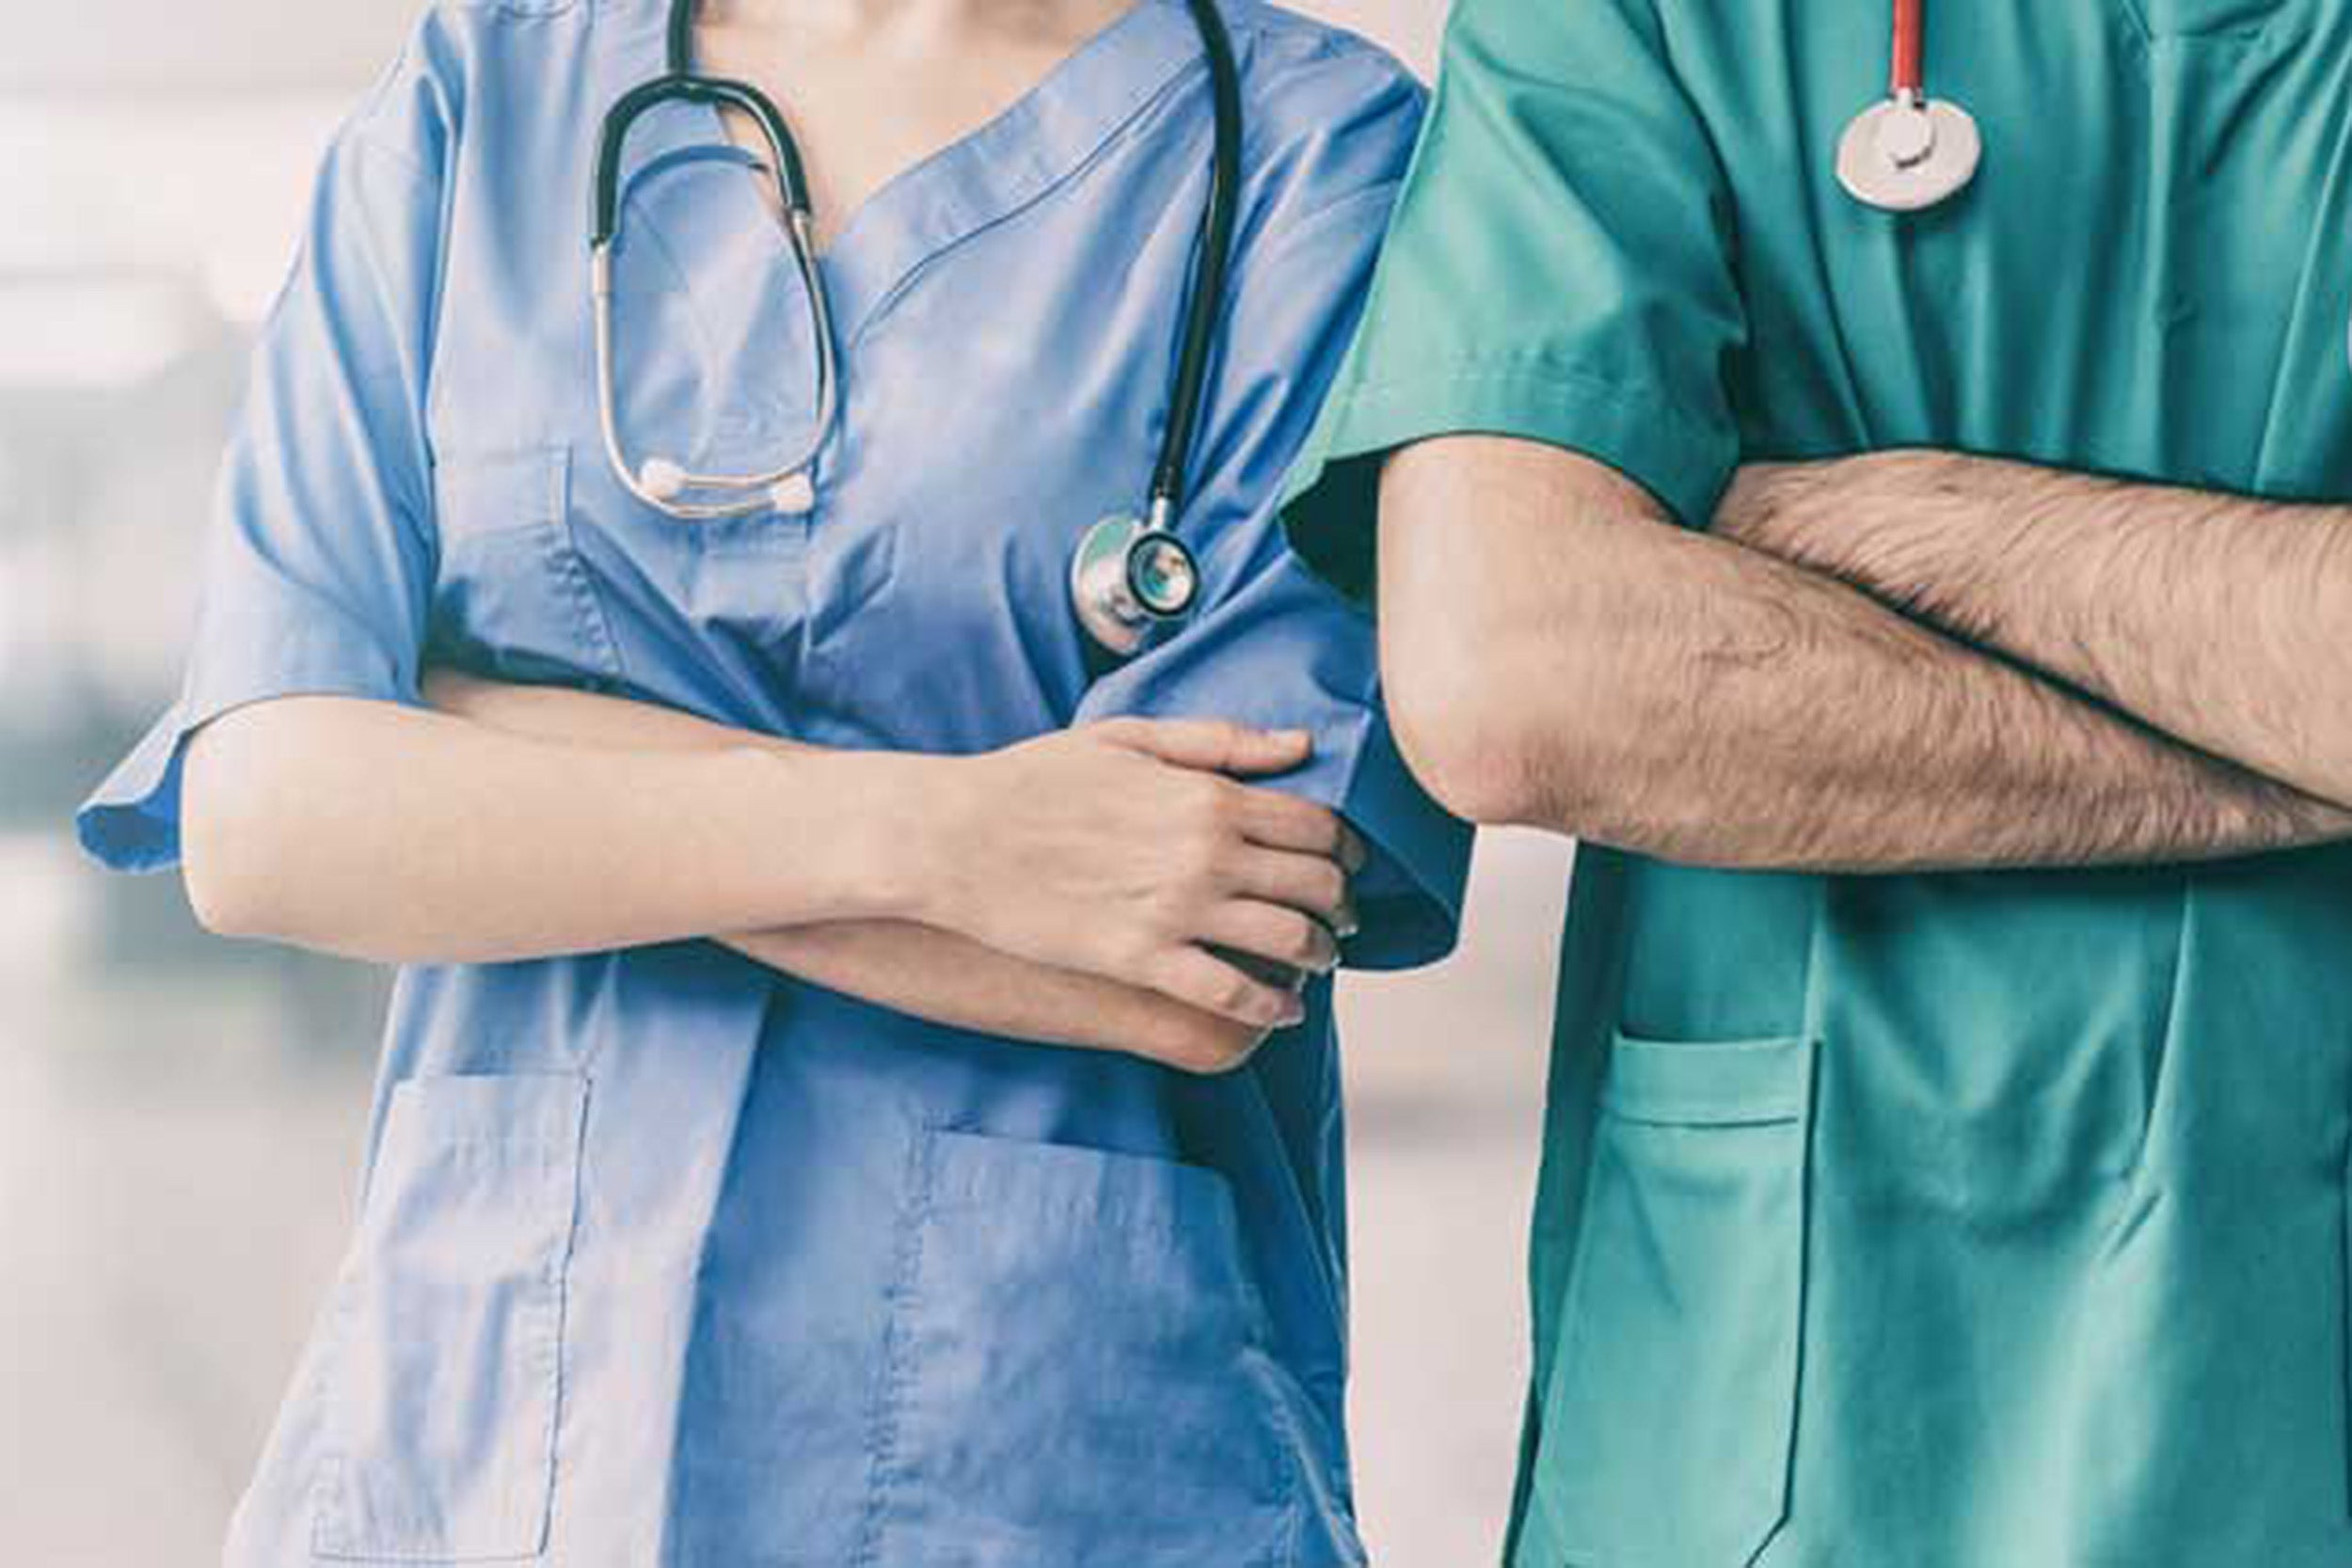 Two people standing next to each other in hospital scrubs with arms crossed